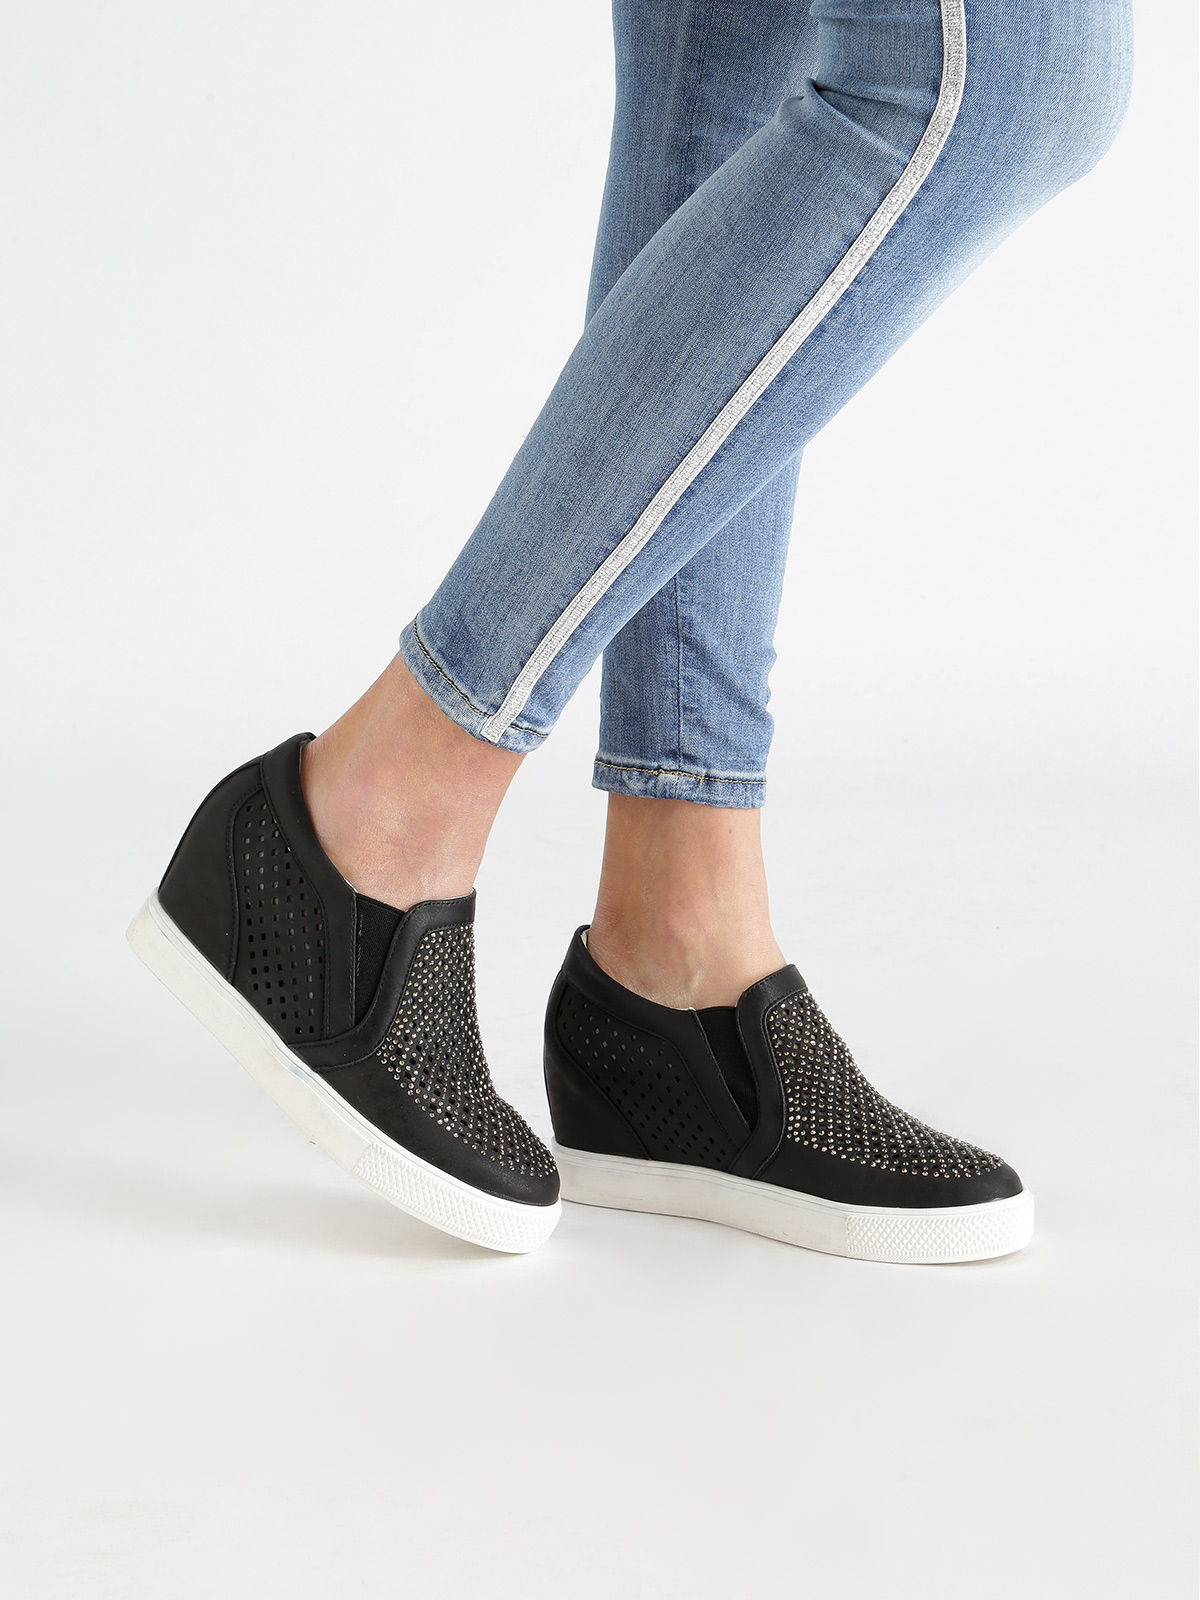 JANESSA Sneakers Perforated With Rhinestone